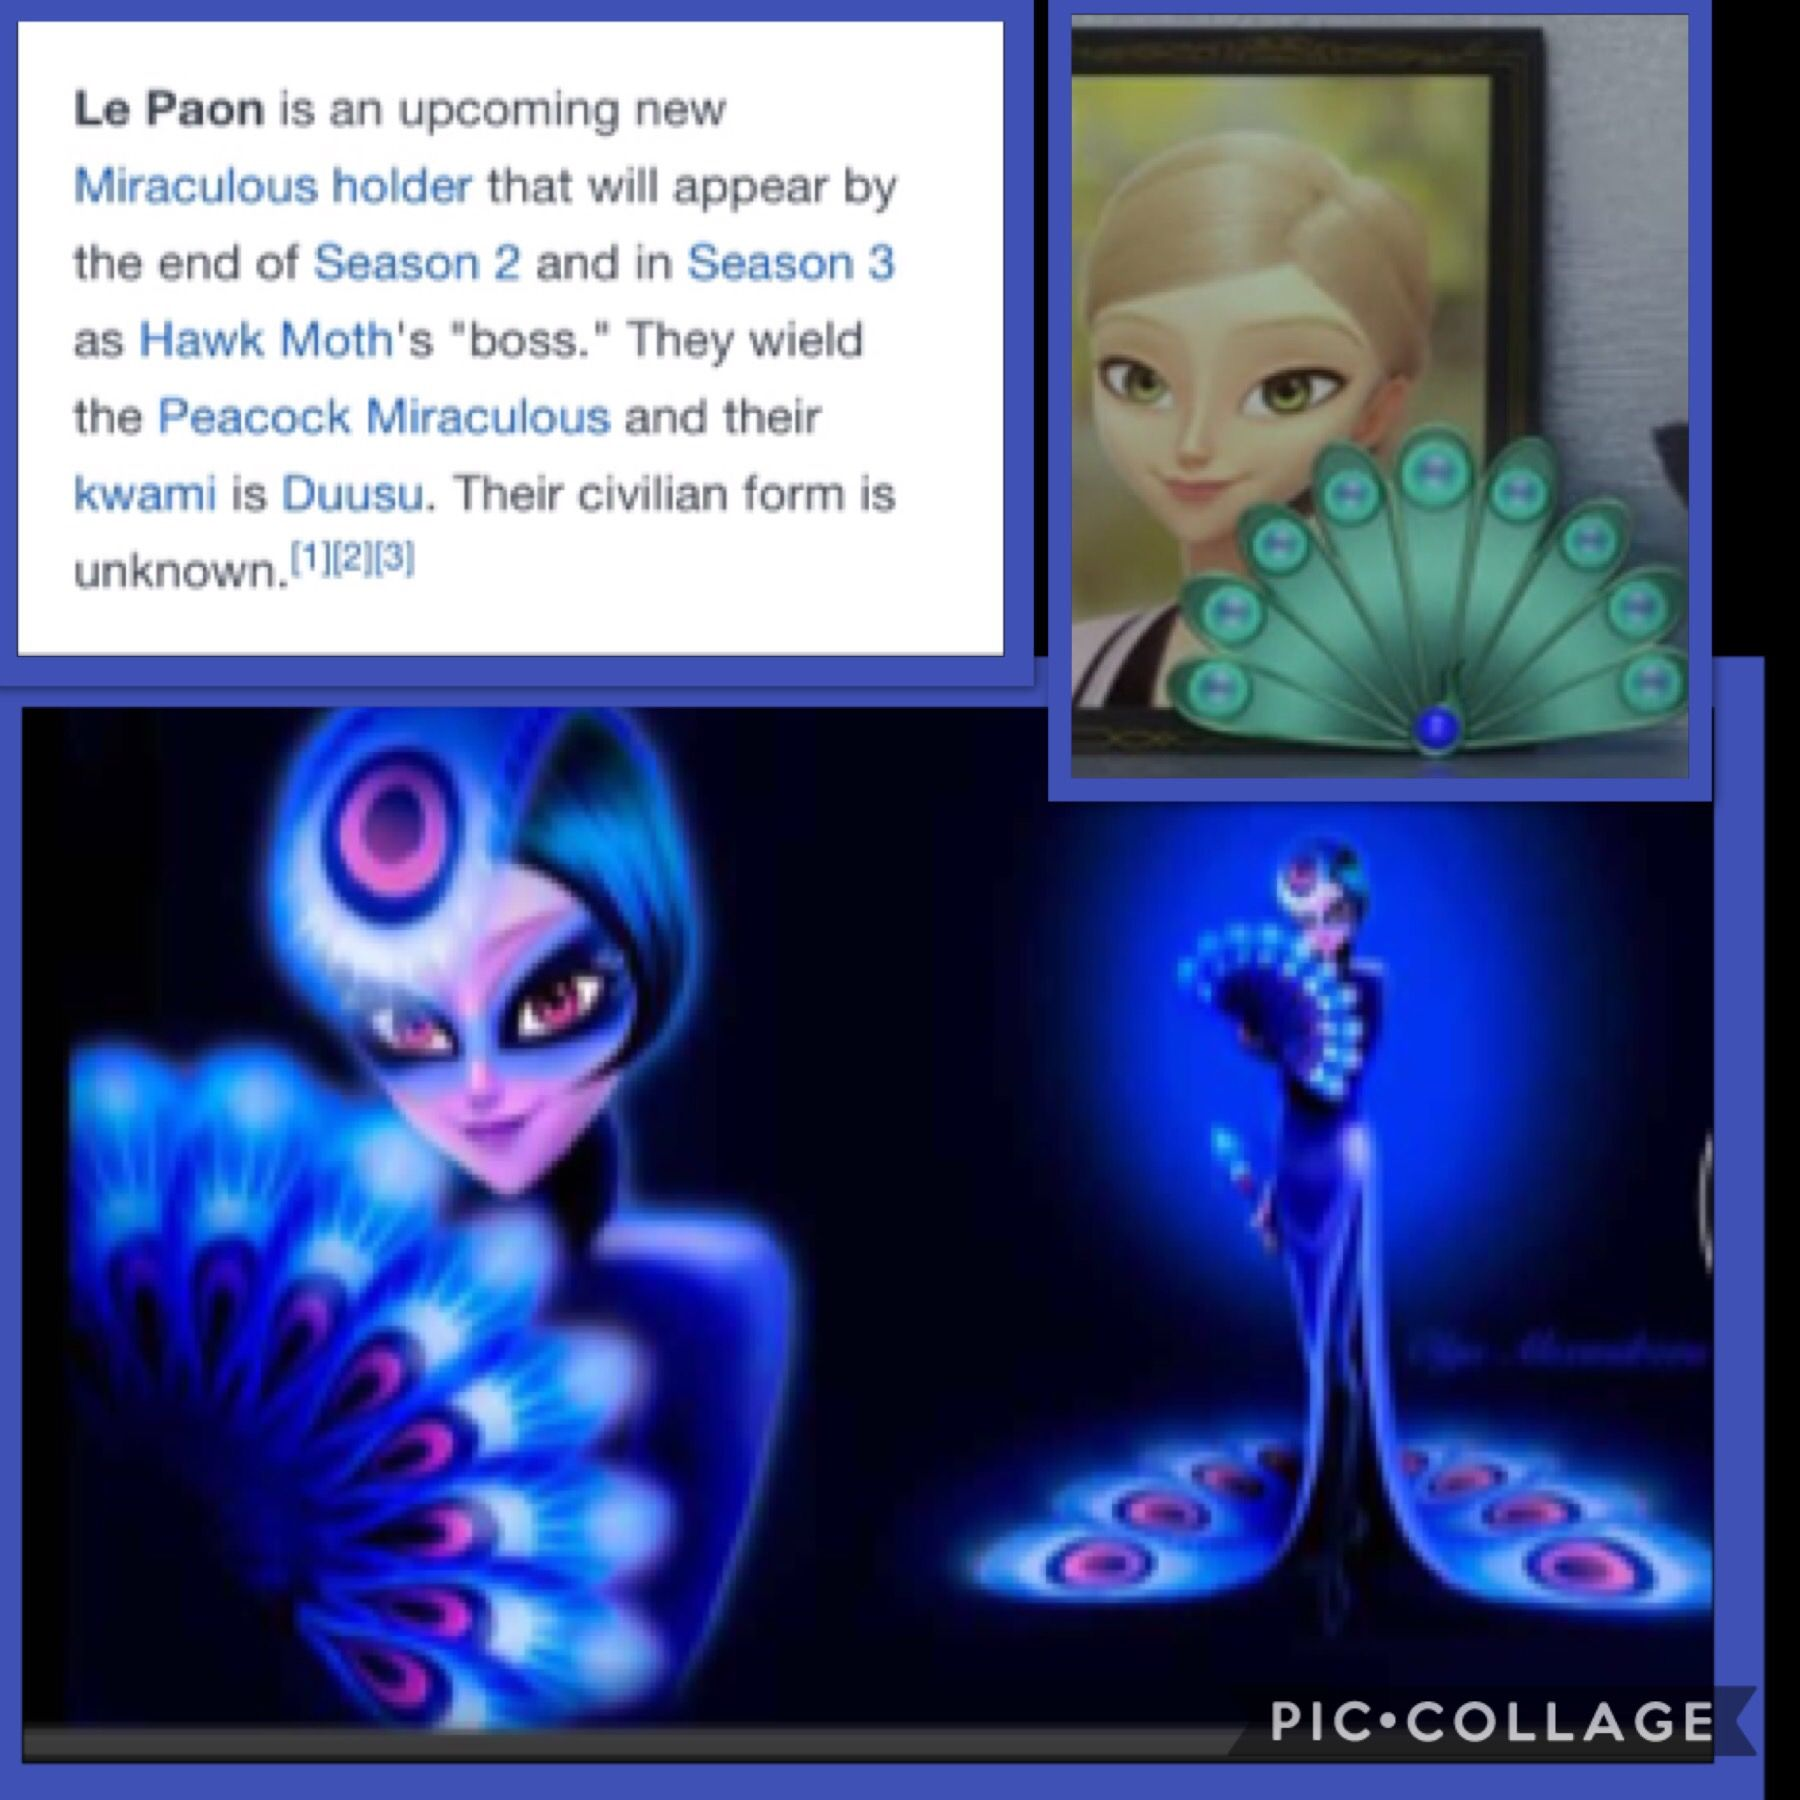 Adrien's mom is the peacock miraculous holder its sooooooo obvious